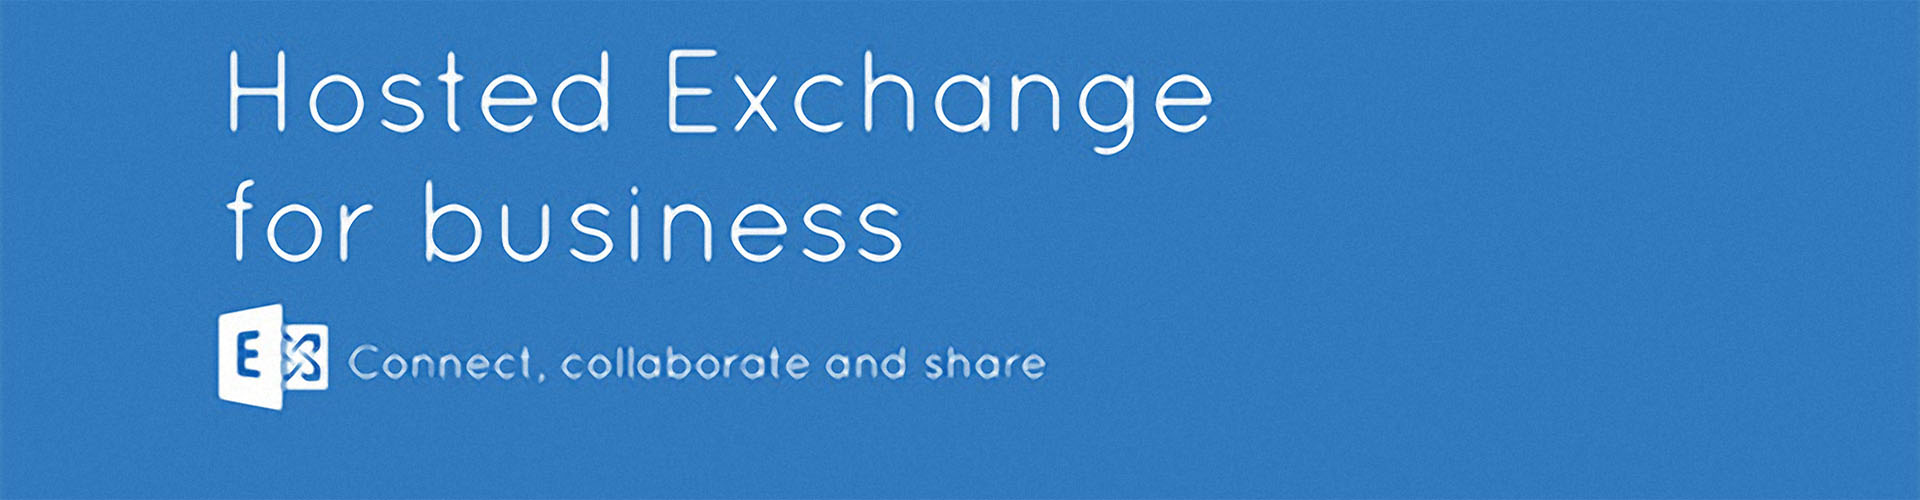 Montreal microsoft hosted exchange 2016